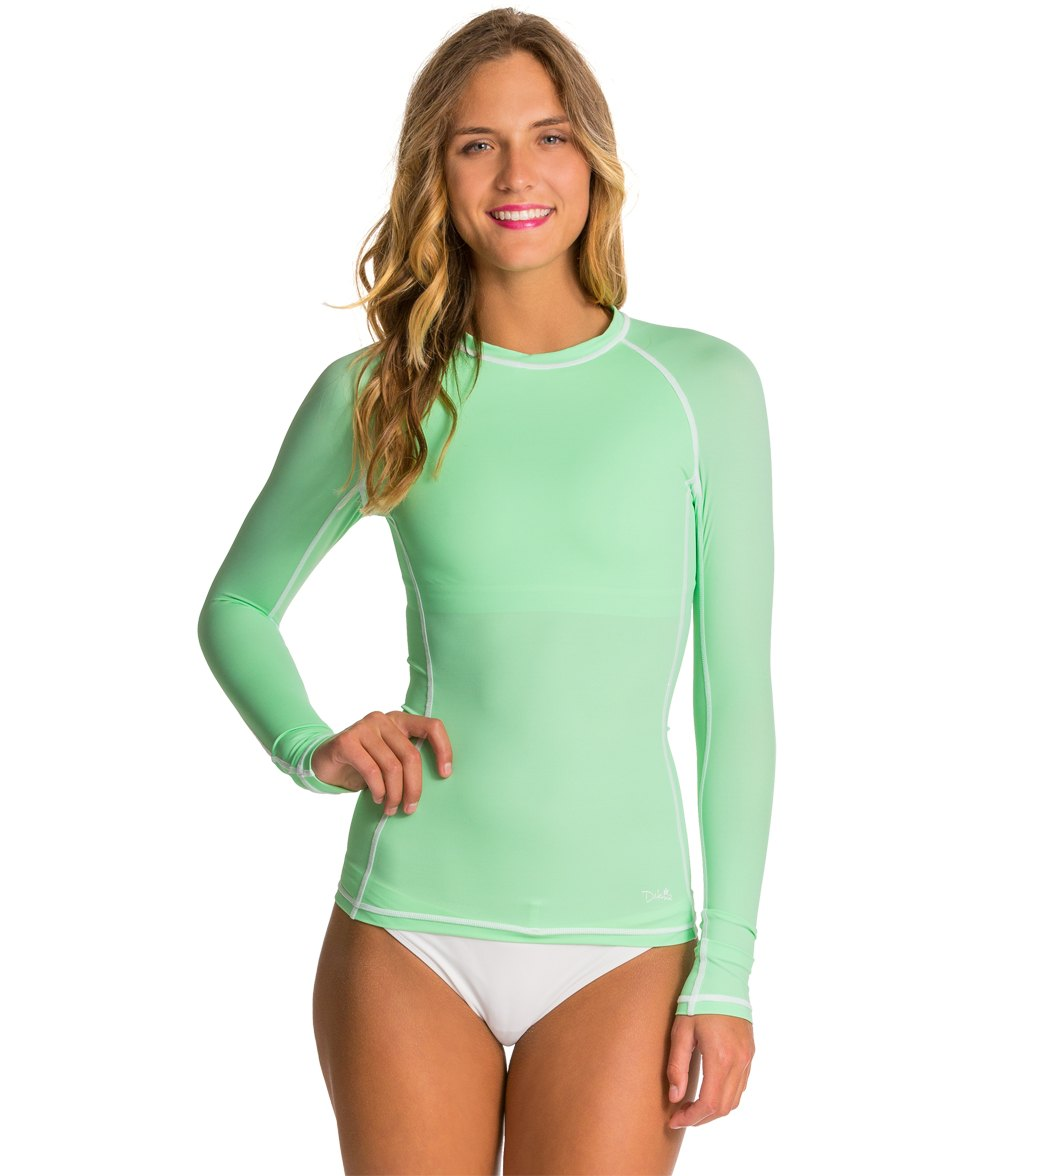 Dakine Amana L/S Rashguard w Shelf Bra at SwimOutlet.com